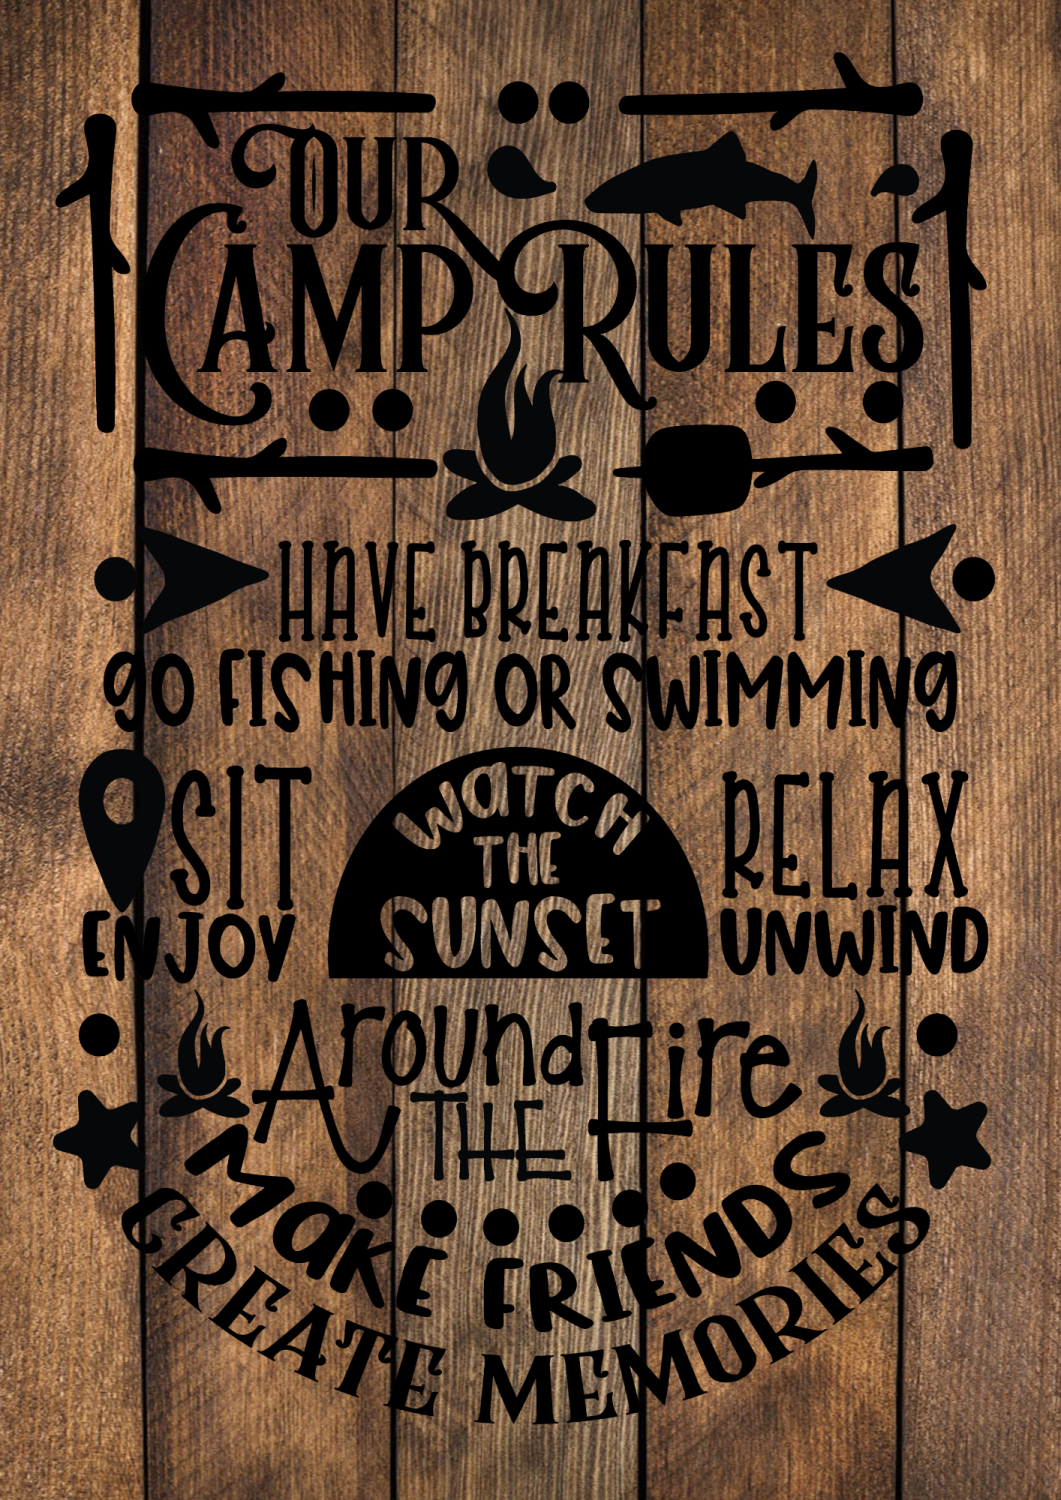 CAMPING RULES WOOD EFFECT METAL SIGN 29CM'S X 20CM'S